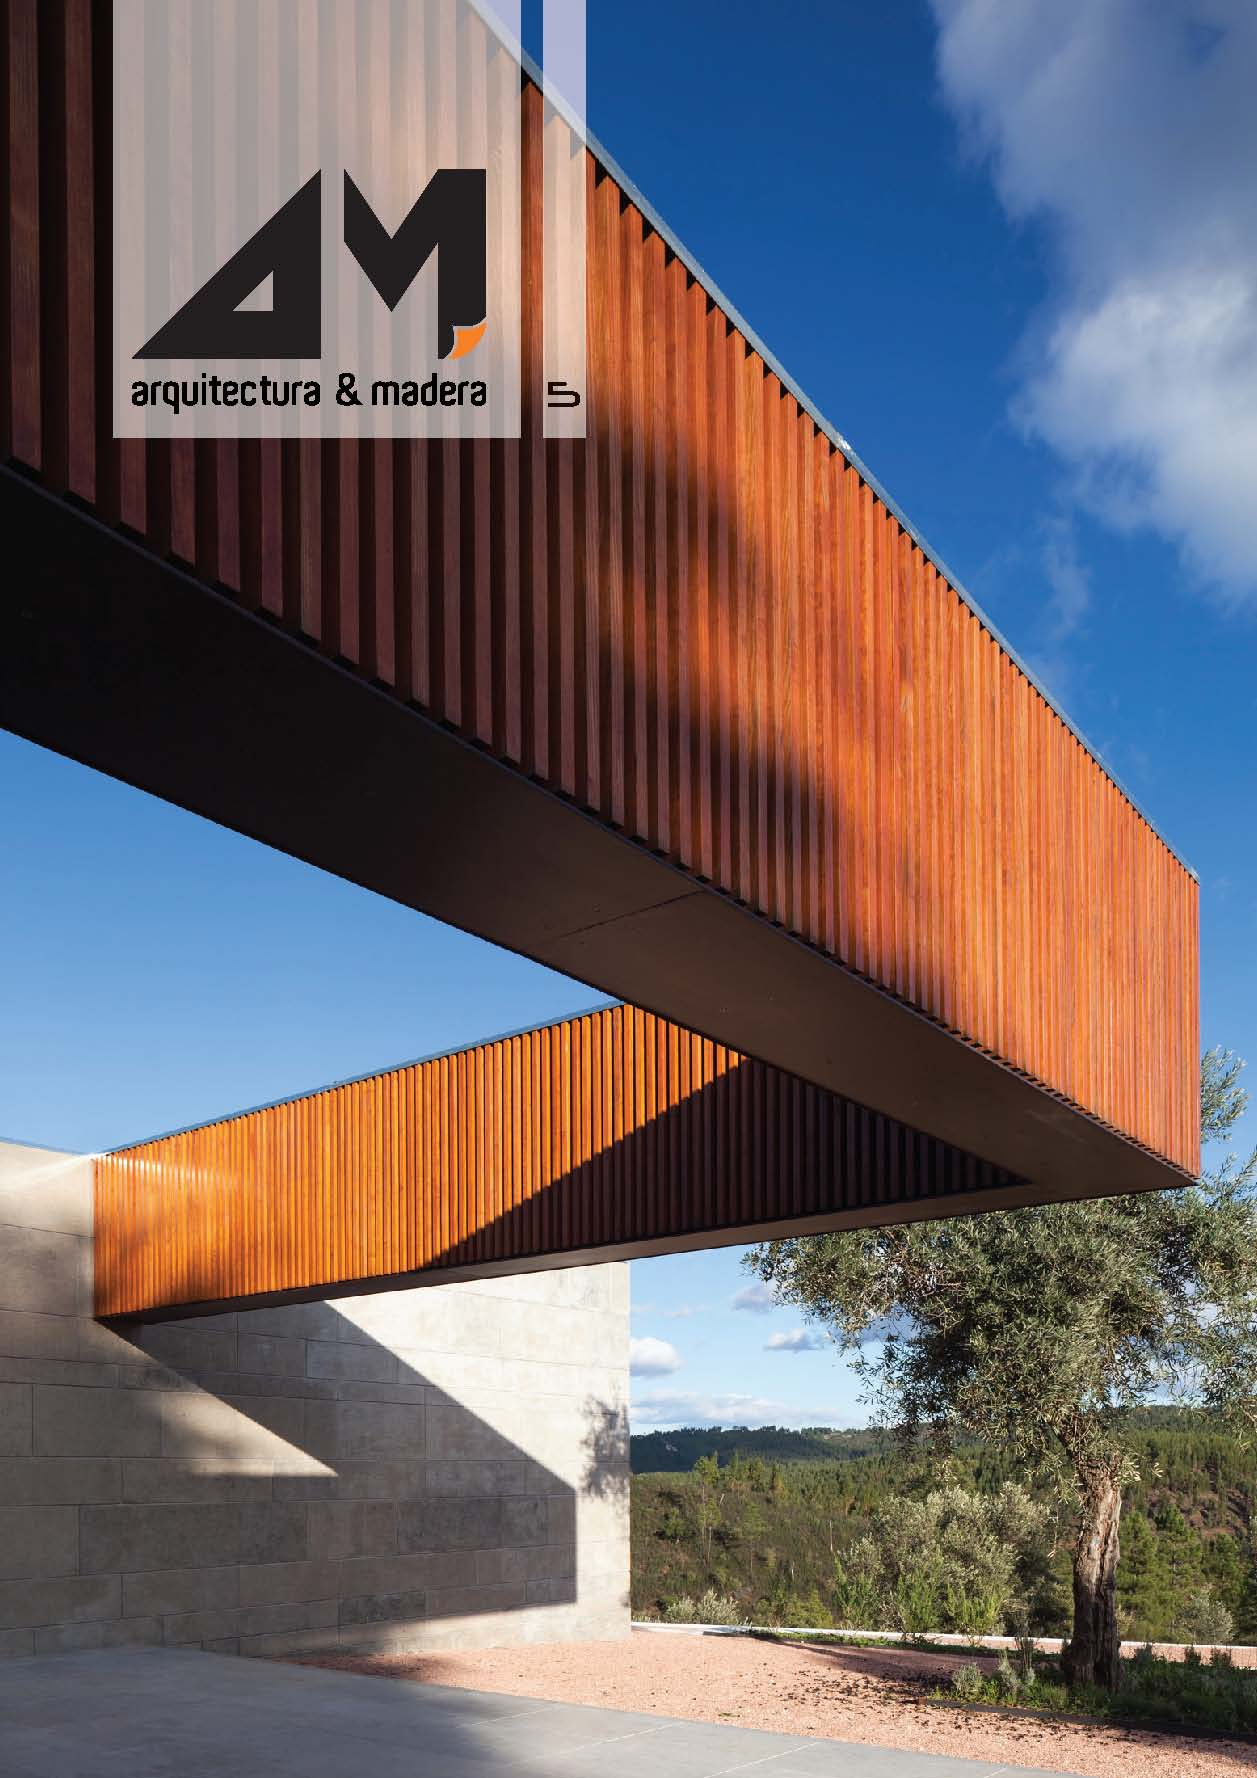 Nº5 Arquitectura y Madera